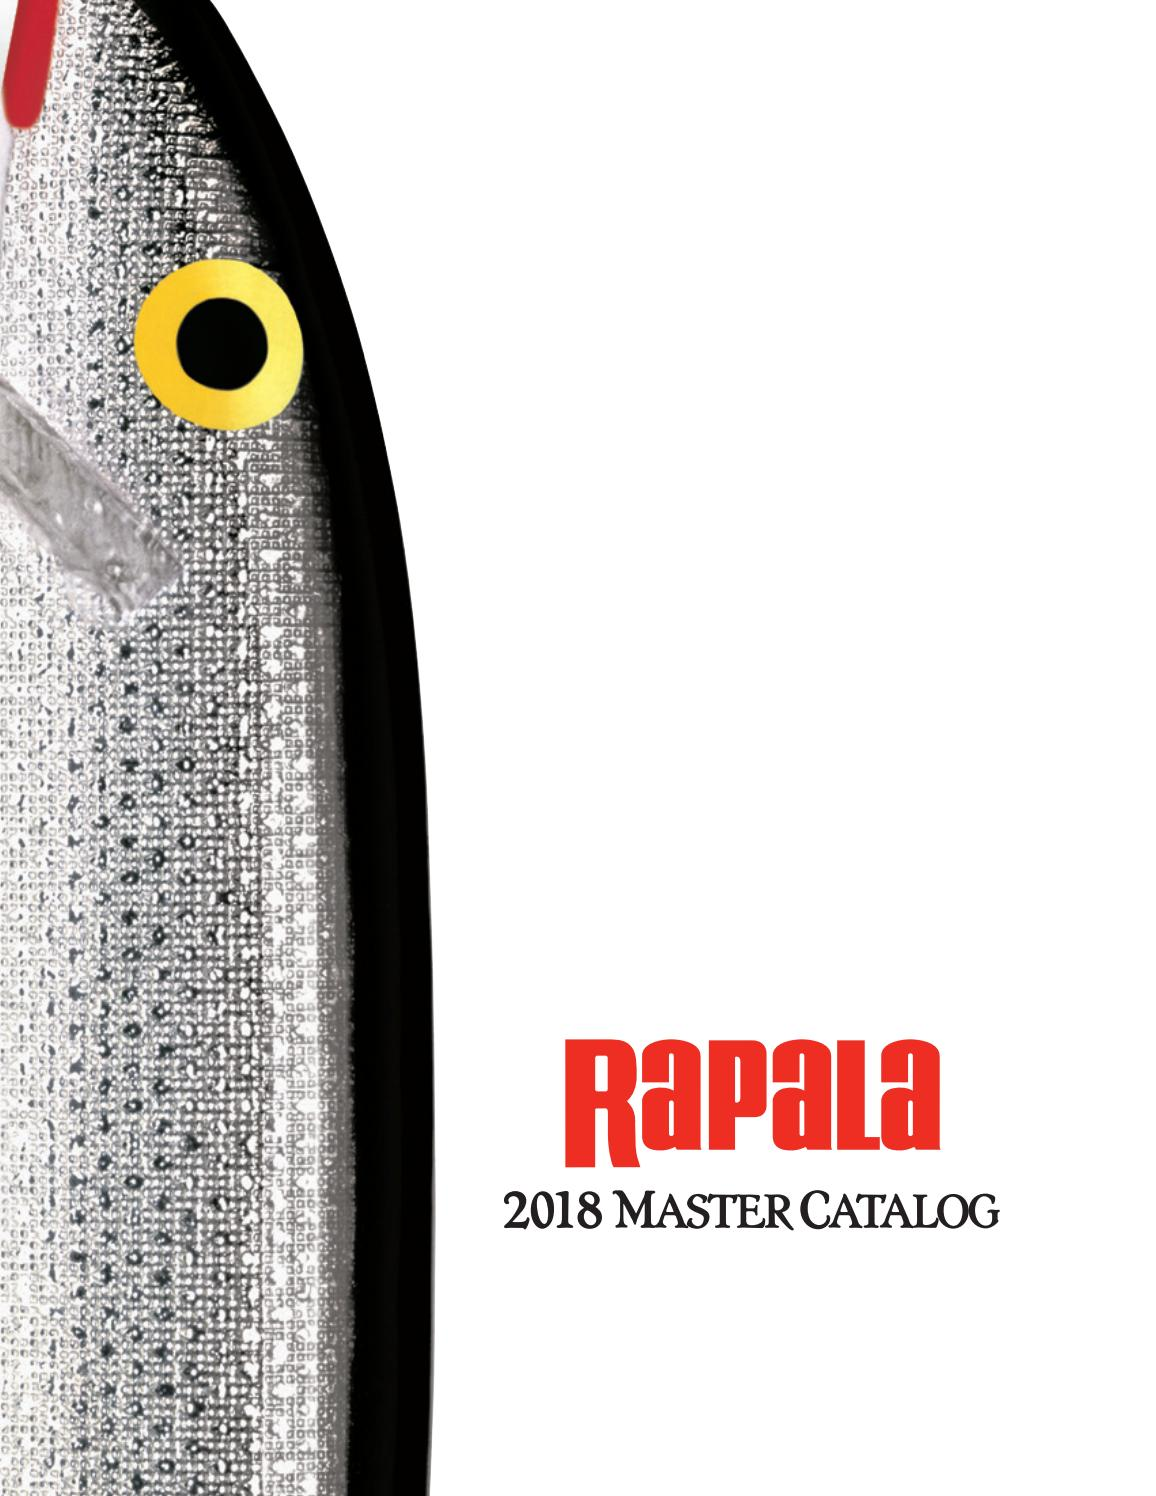 Rapala Jointed Suspending Shad Rap 7 JSR07 BCW BROWN CRAWDAD for Bass//Walleye